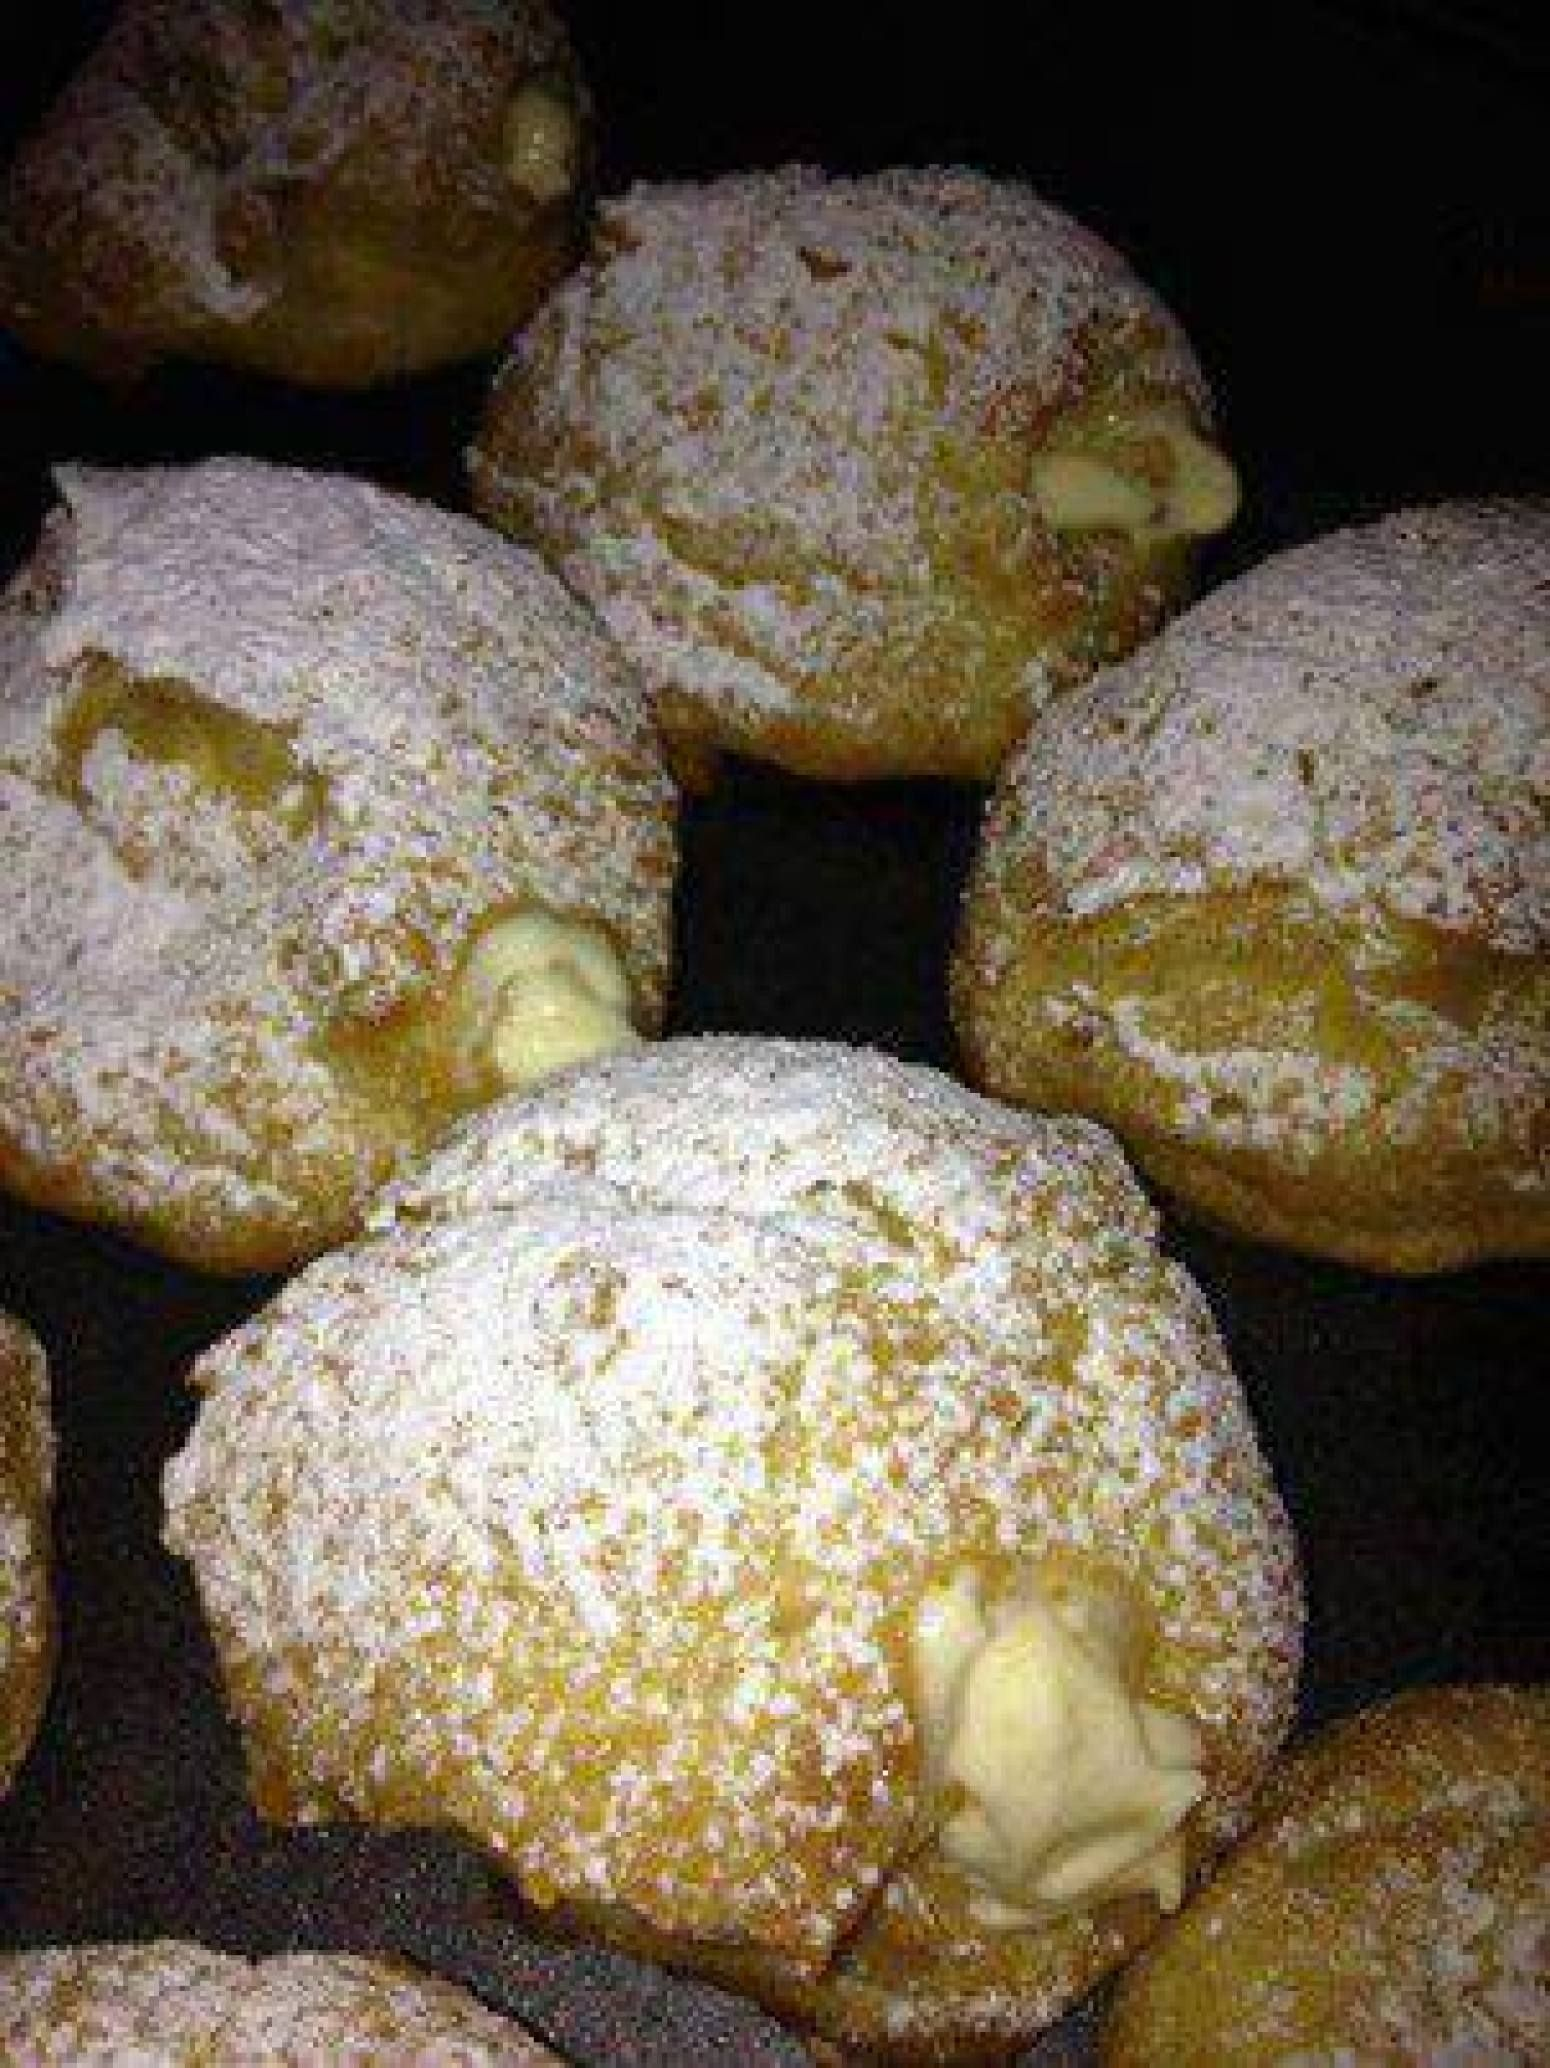 OMG!!!!!!! These are OUT OF THIS WORLD!!!!!!!! Cream puffs